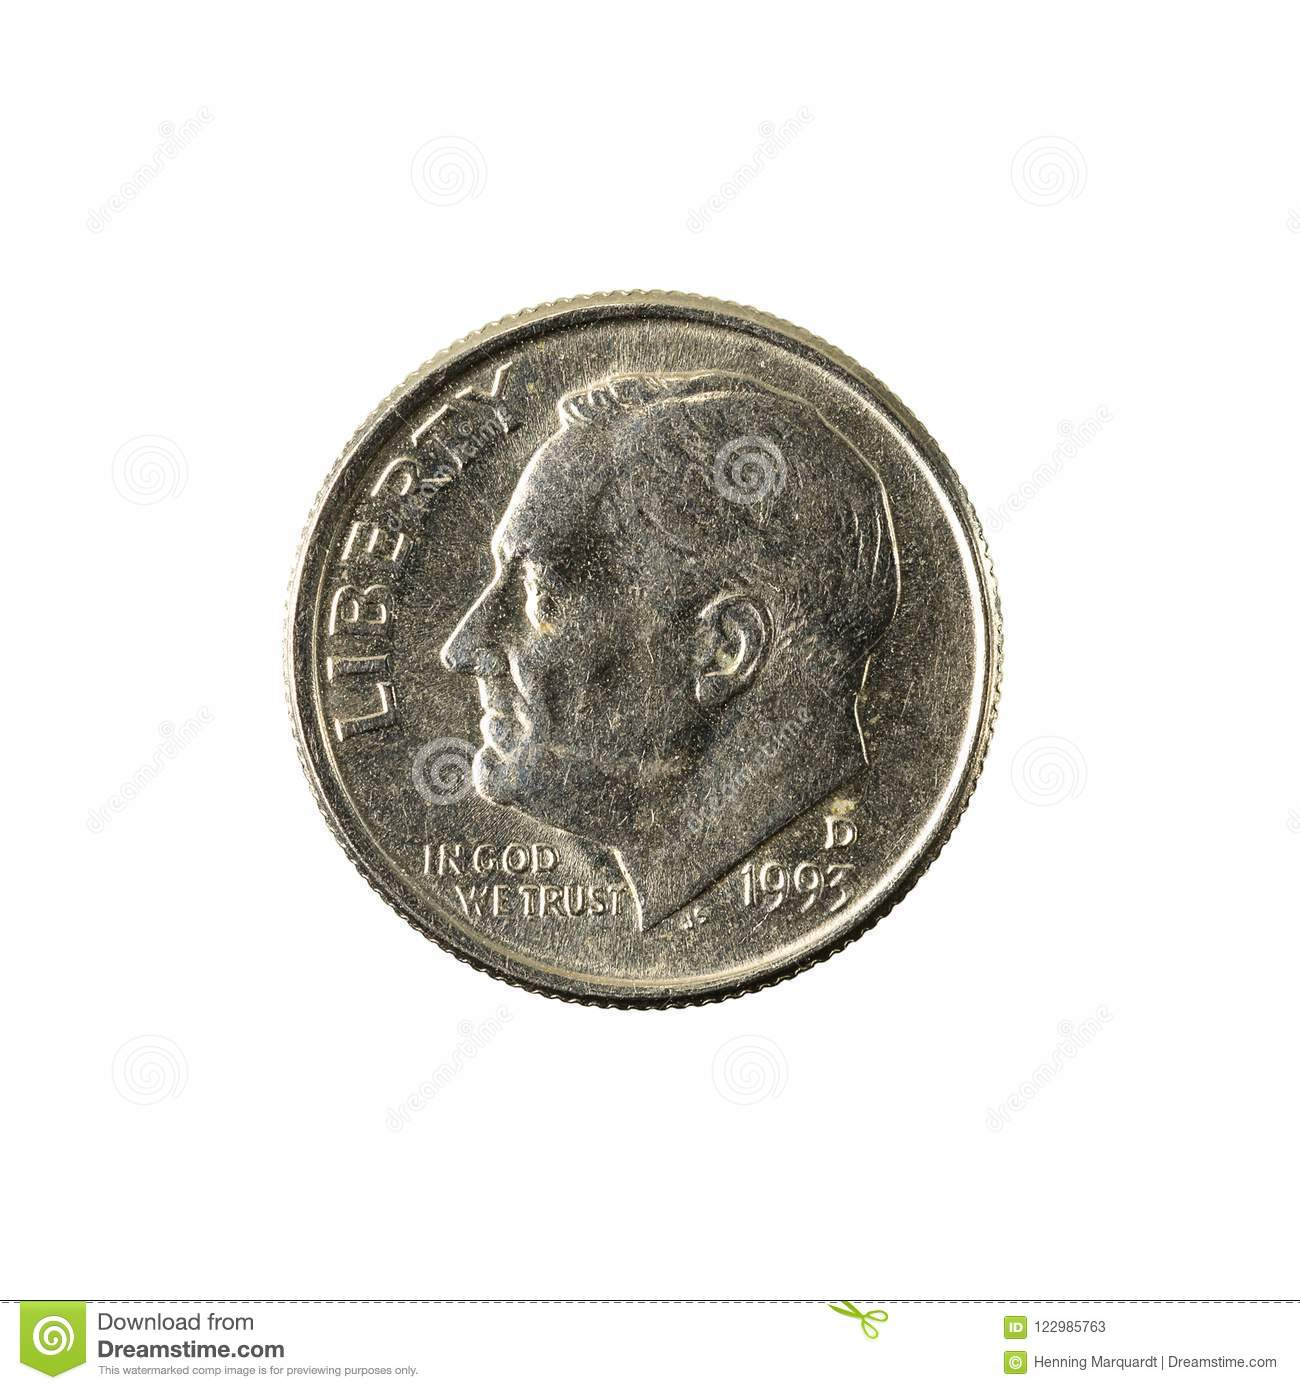 1 united states dime coin 1993 reverse